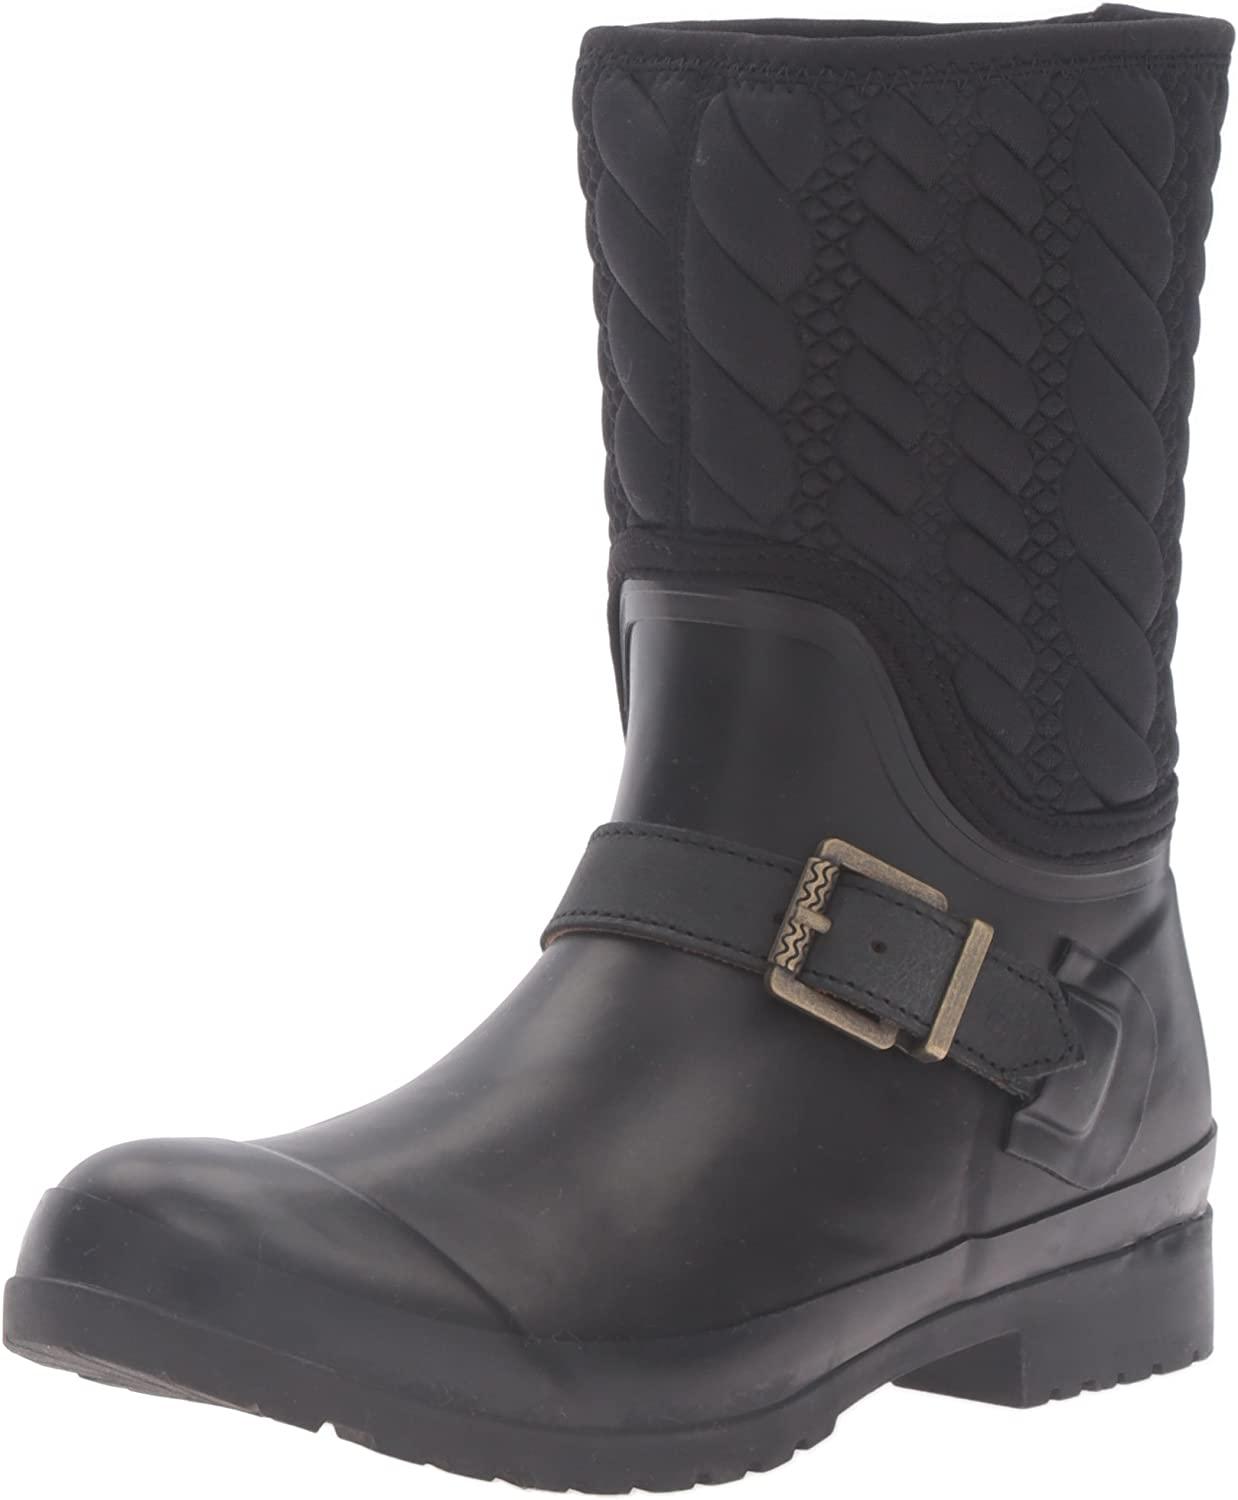 Sperry Top-Sider Women's Walker Fog Rope Rain Boot Beige